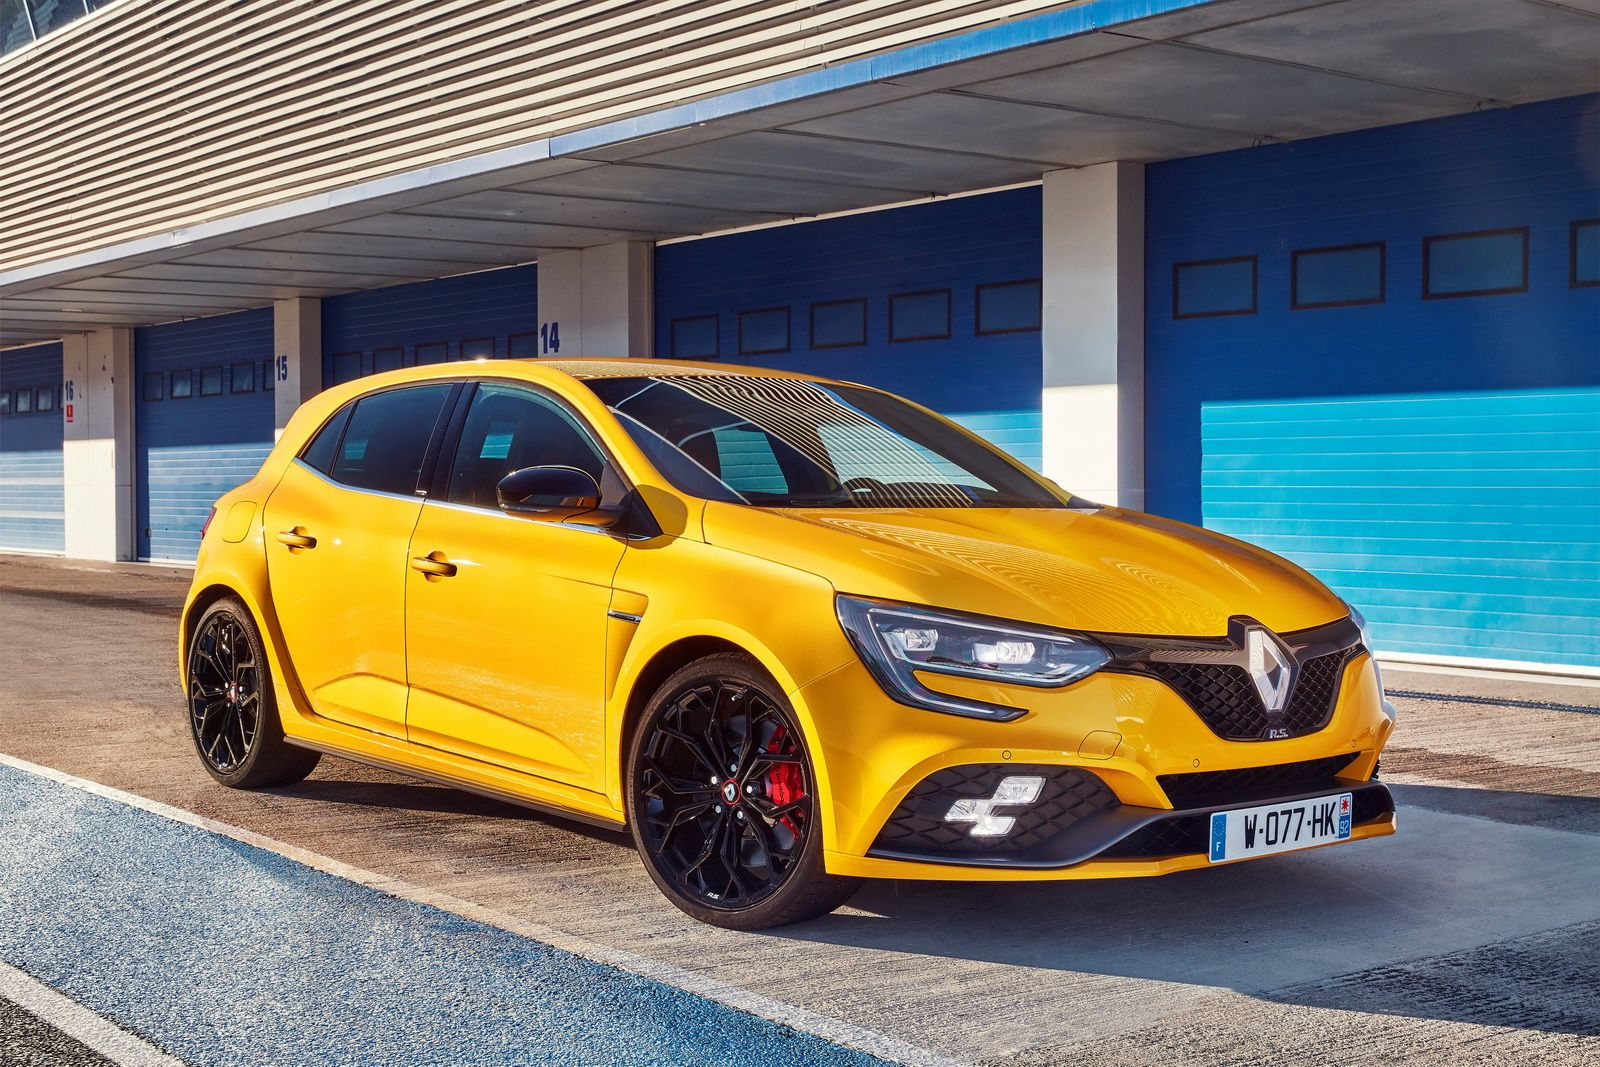 New Renault Megane Rs Detailed In 132 Images Carscoops Renault Megane New Renault Renault